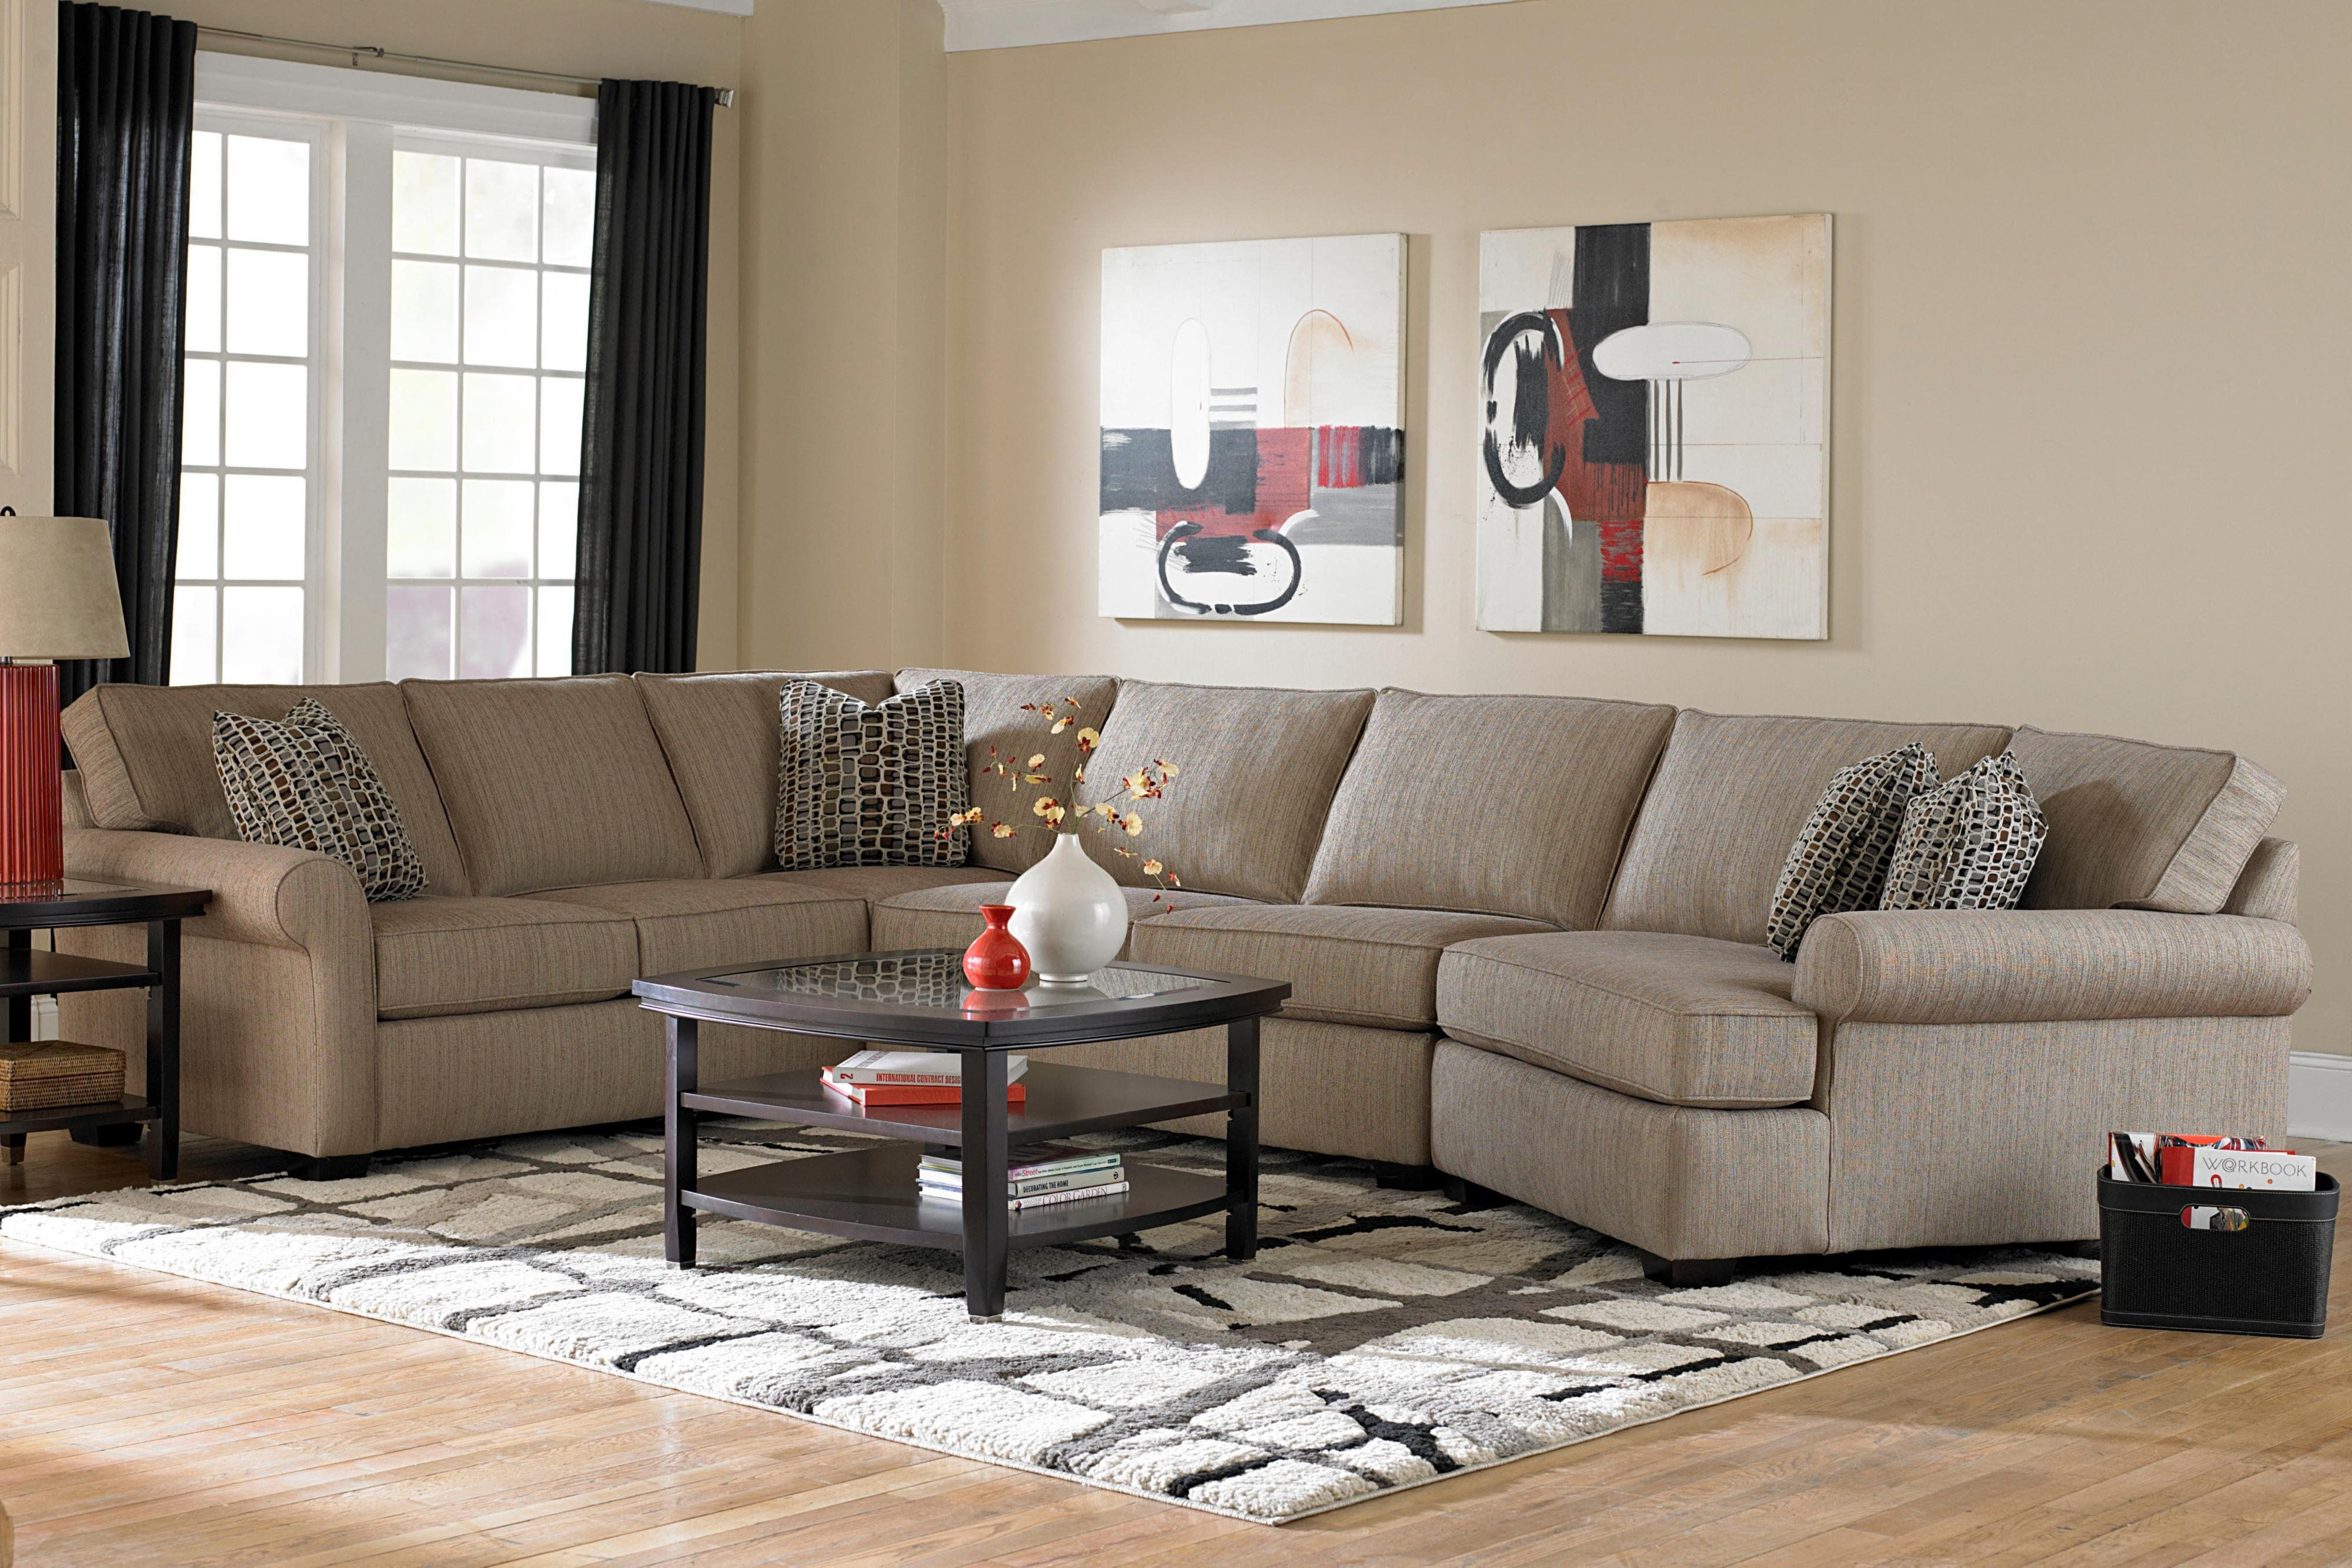 Latest Meyer 3 Piece Sectionals With Laf Chaise With Regard To Broyhill Furniture Ethan Transitional Sectional Sofa With Left (View 16 of 20)